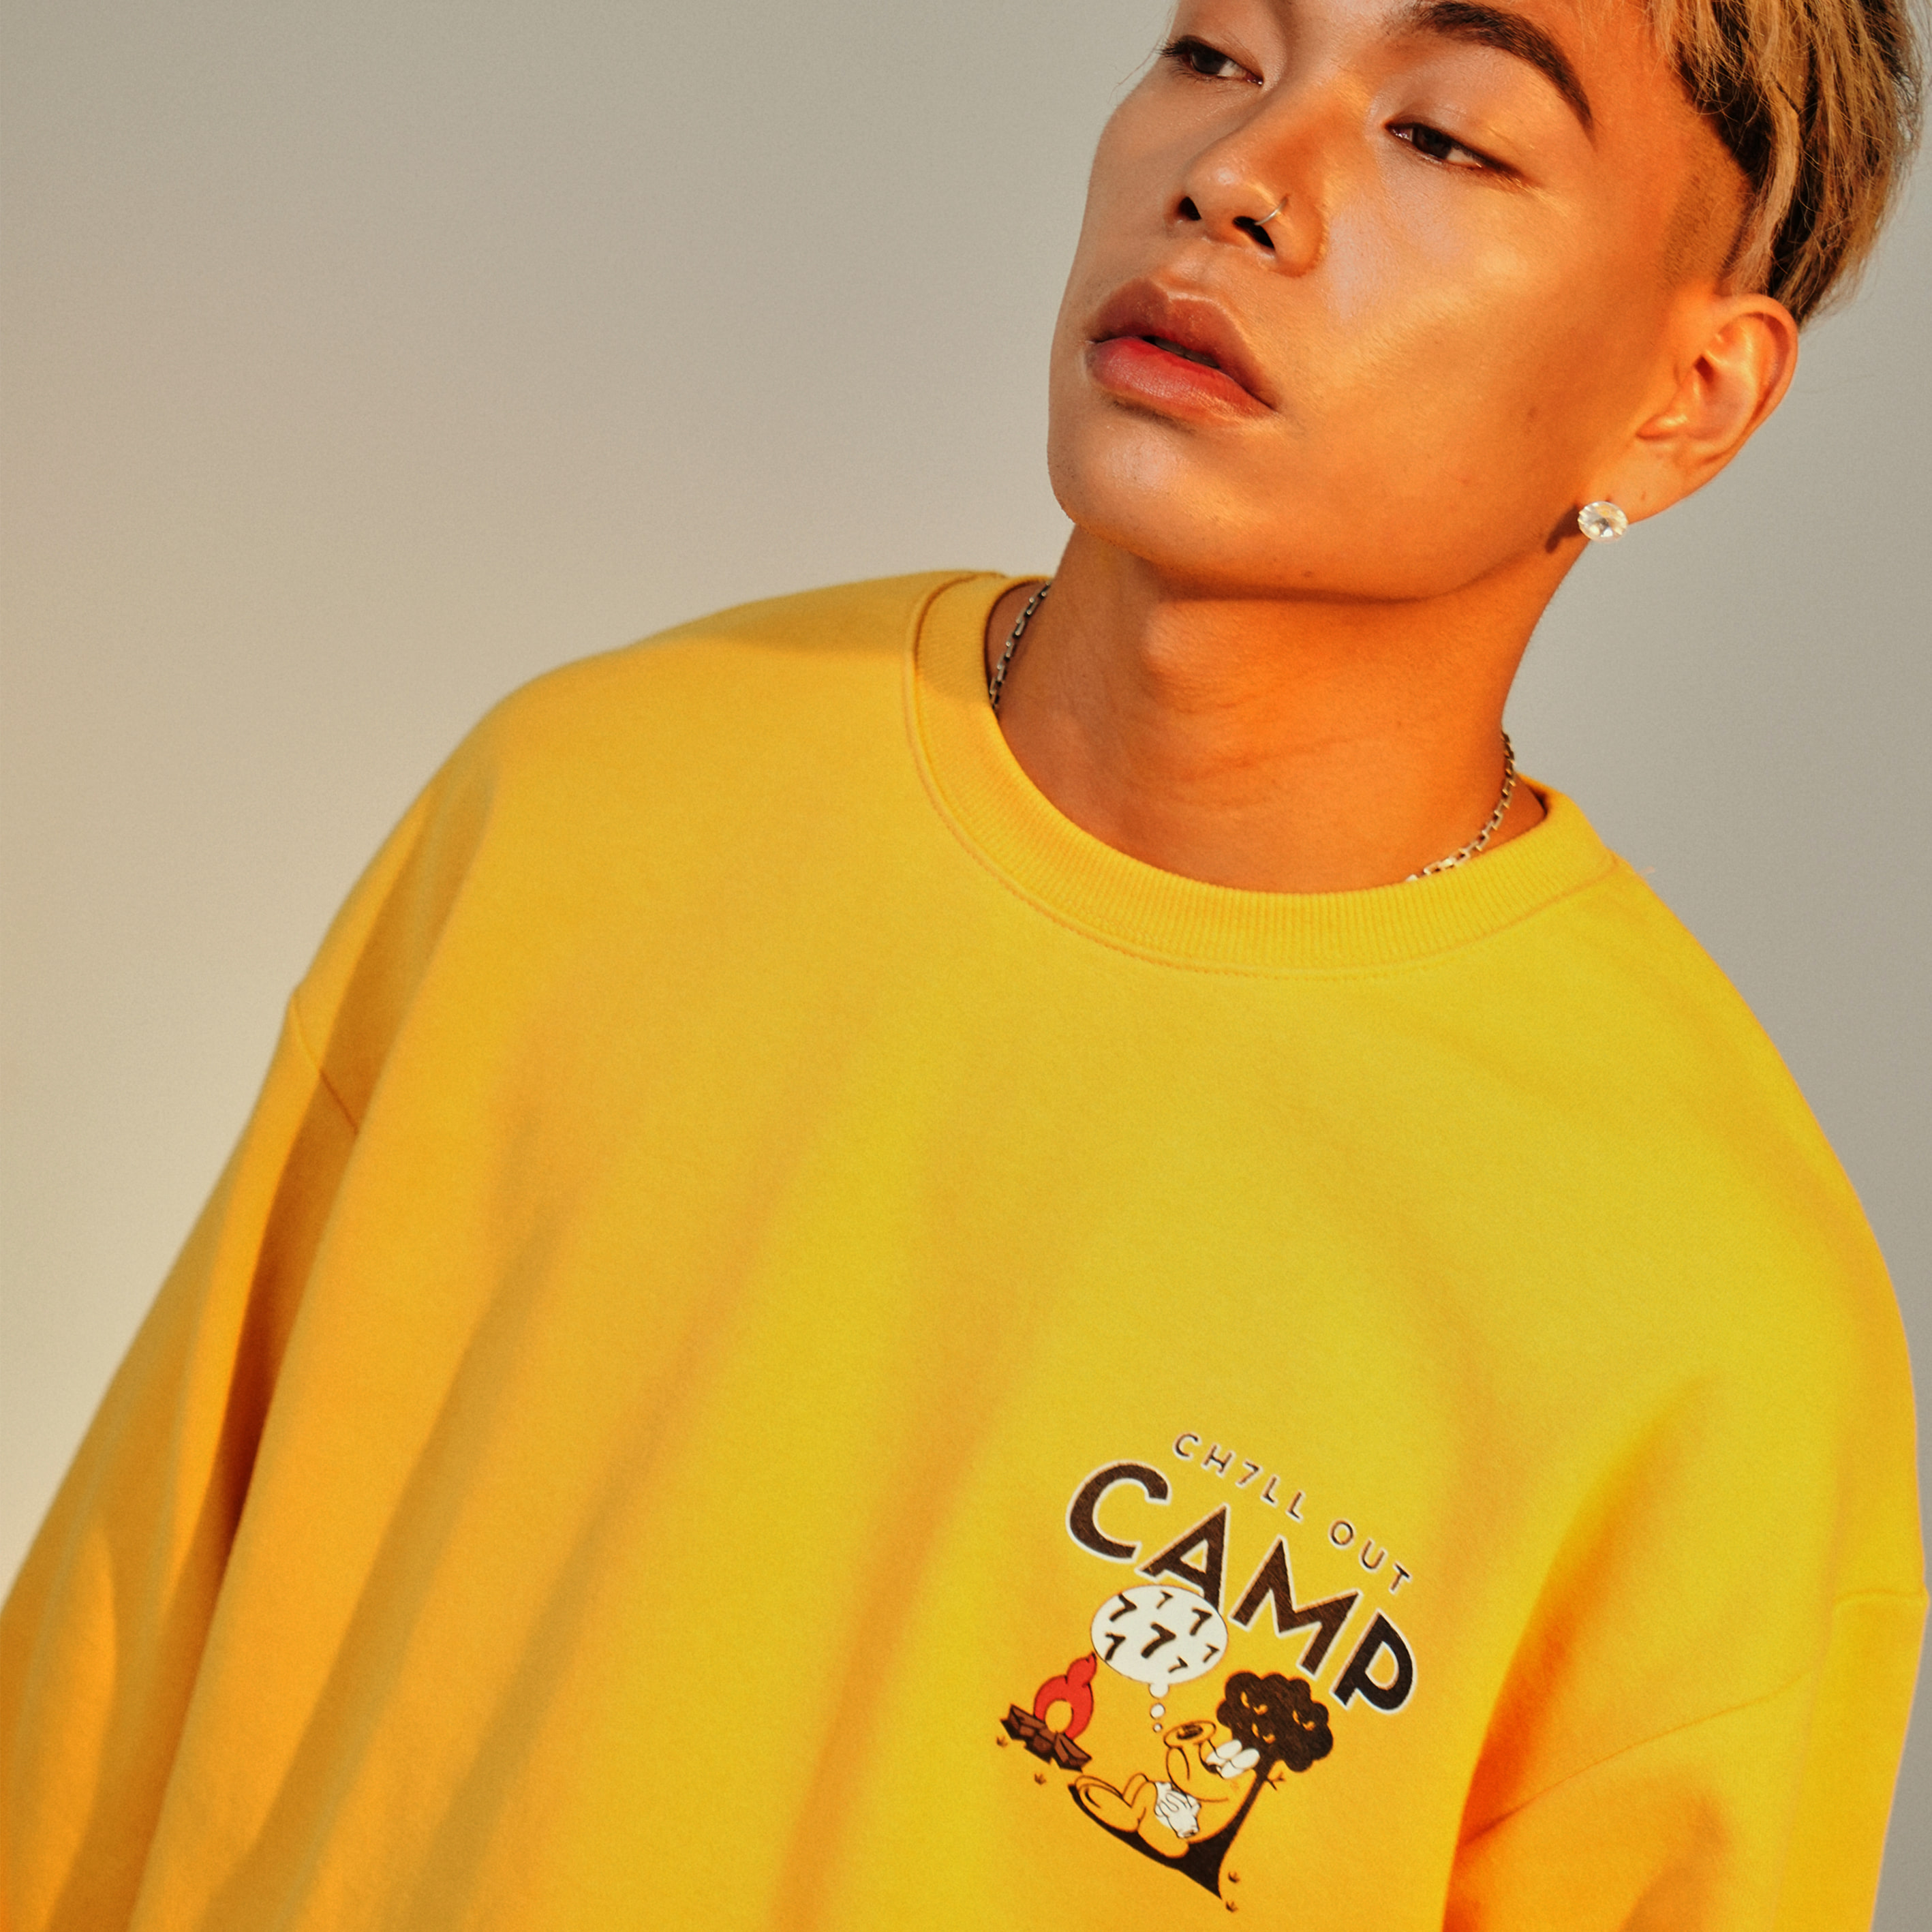 [50%]CH7LL OUT CAMP 스웻셔츠_YELLOW_59,000원